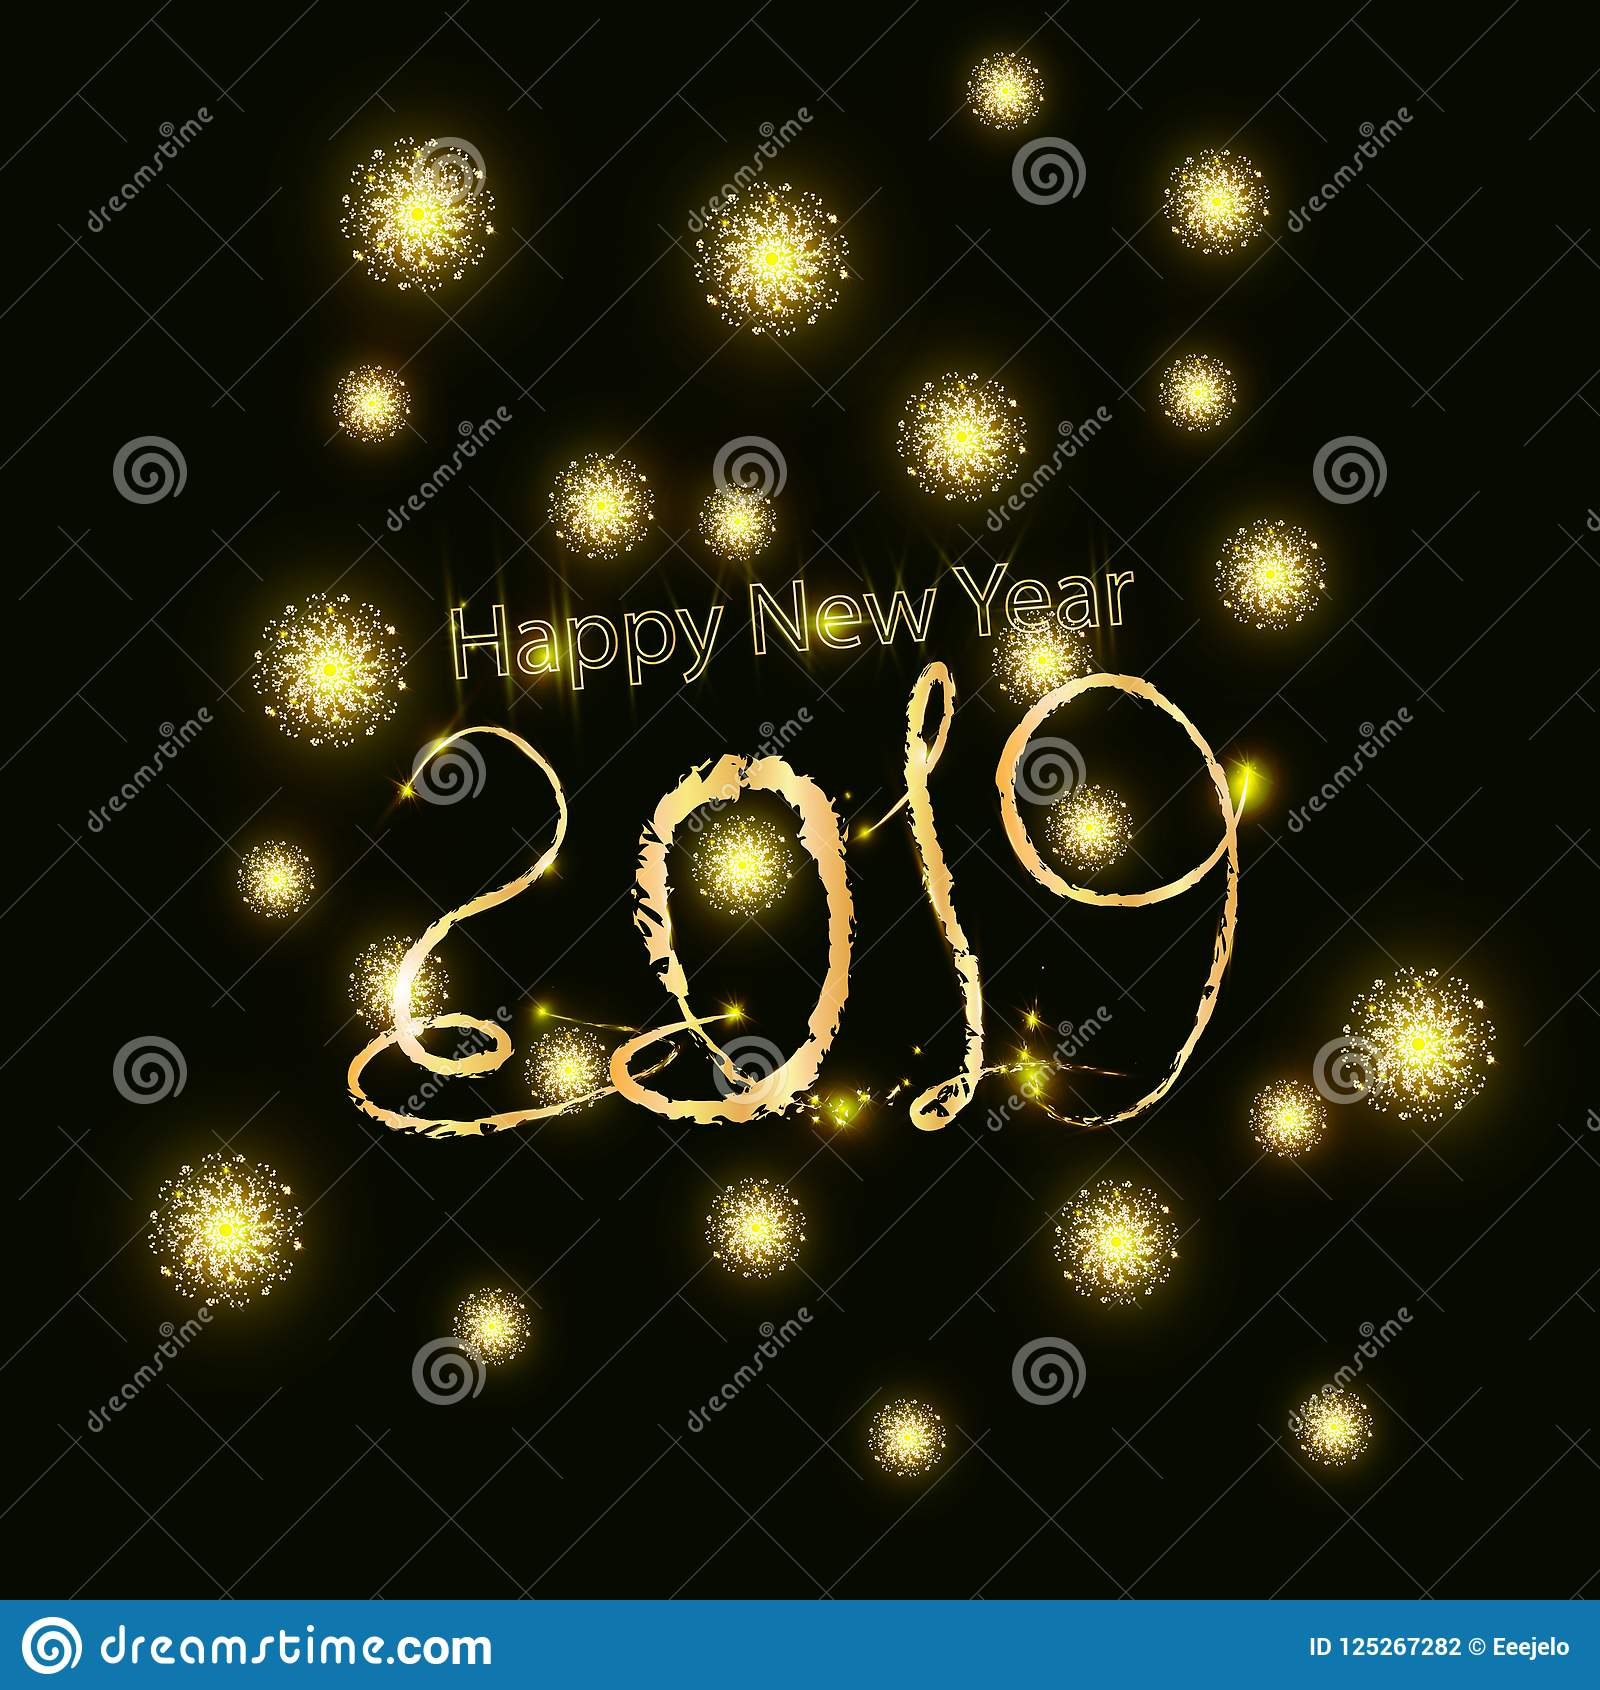 2019 Happy New Year Background With Number And Golden